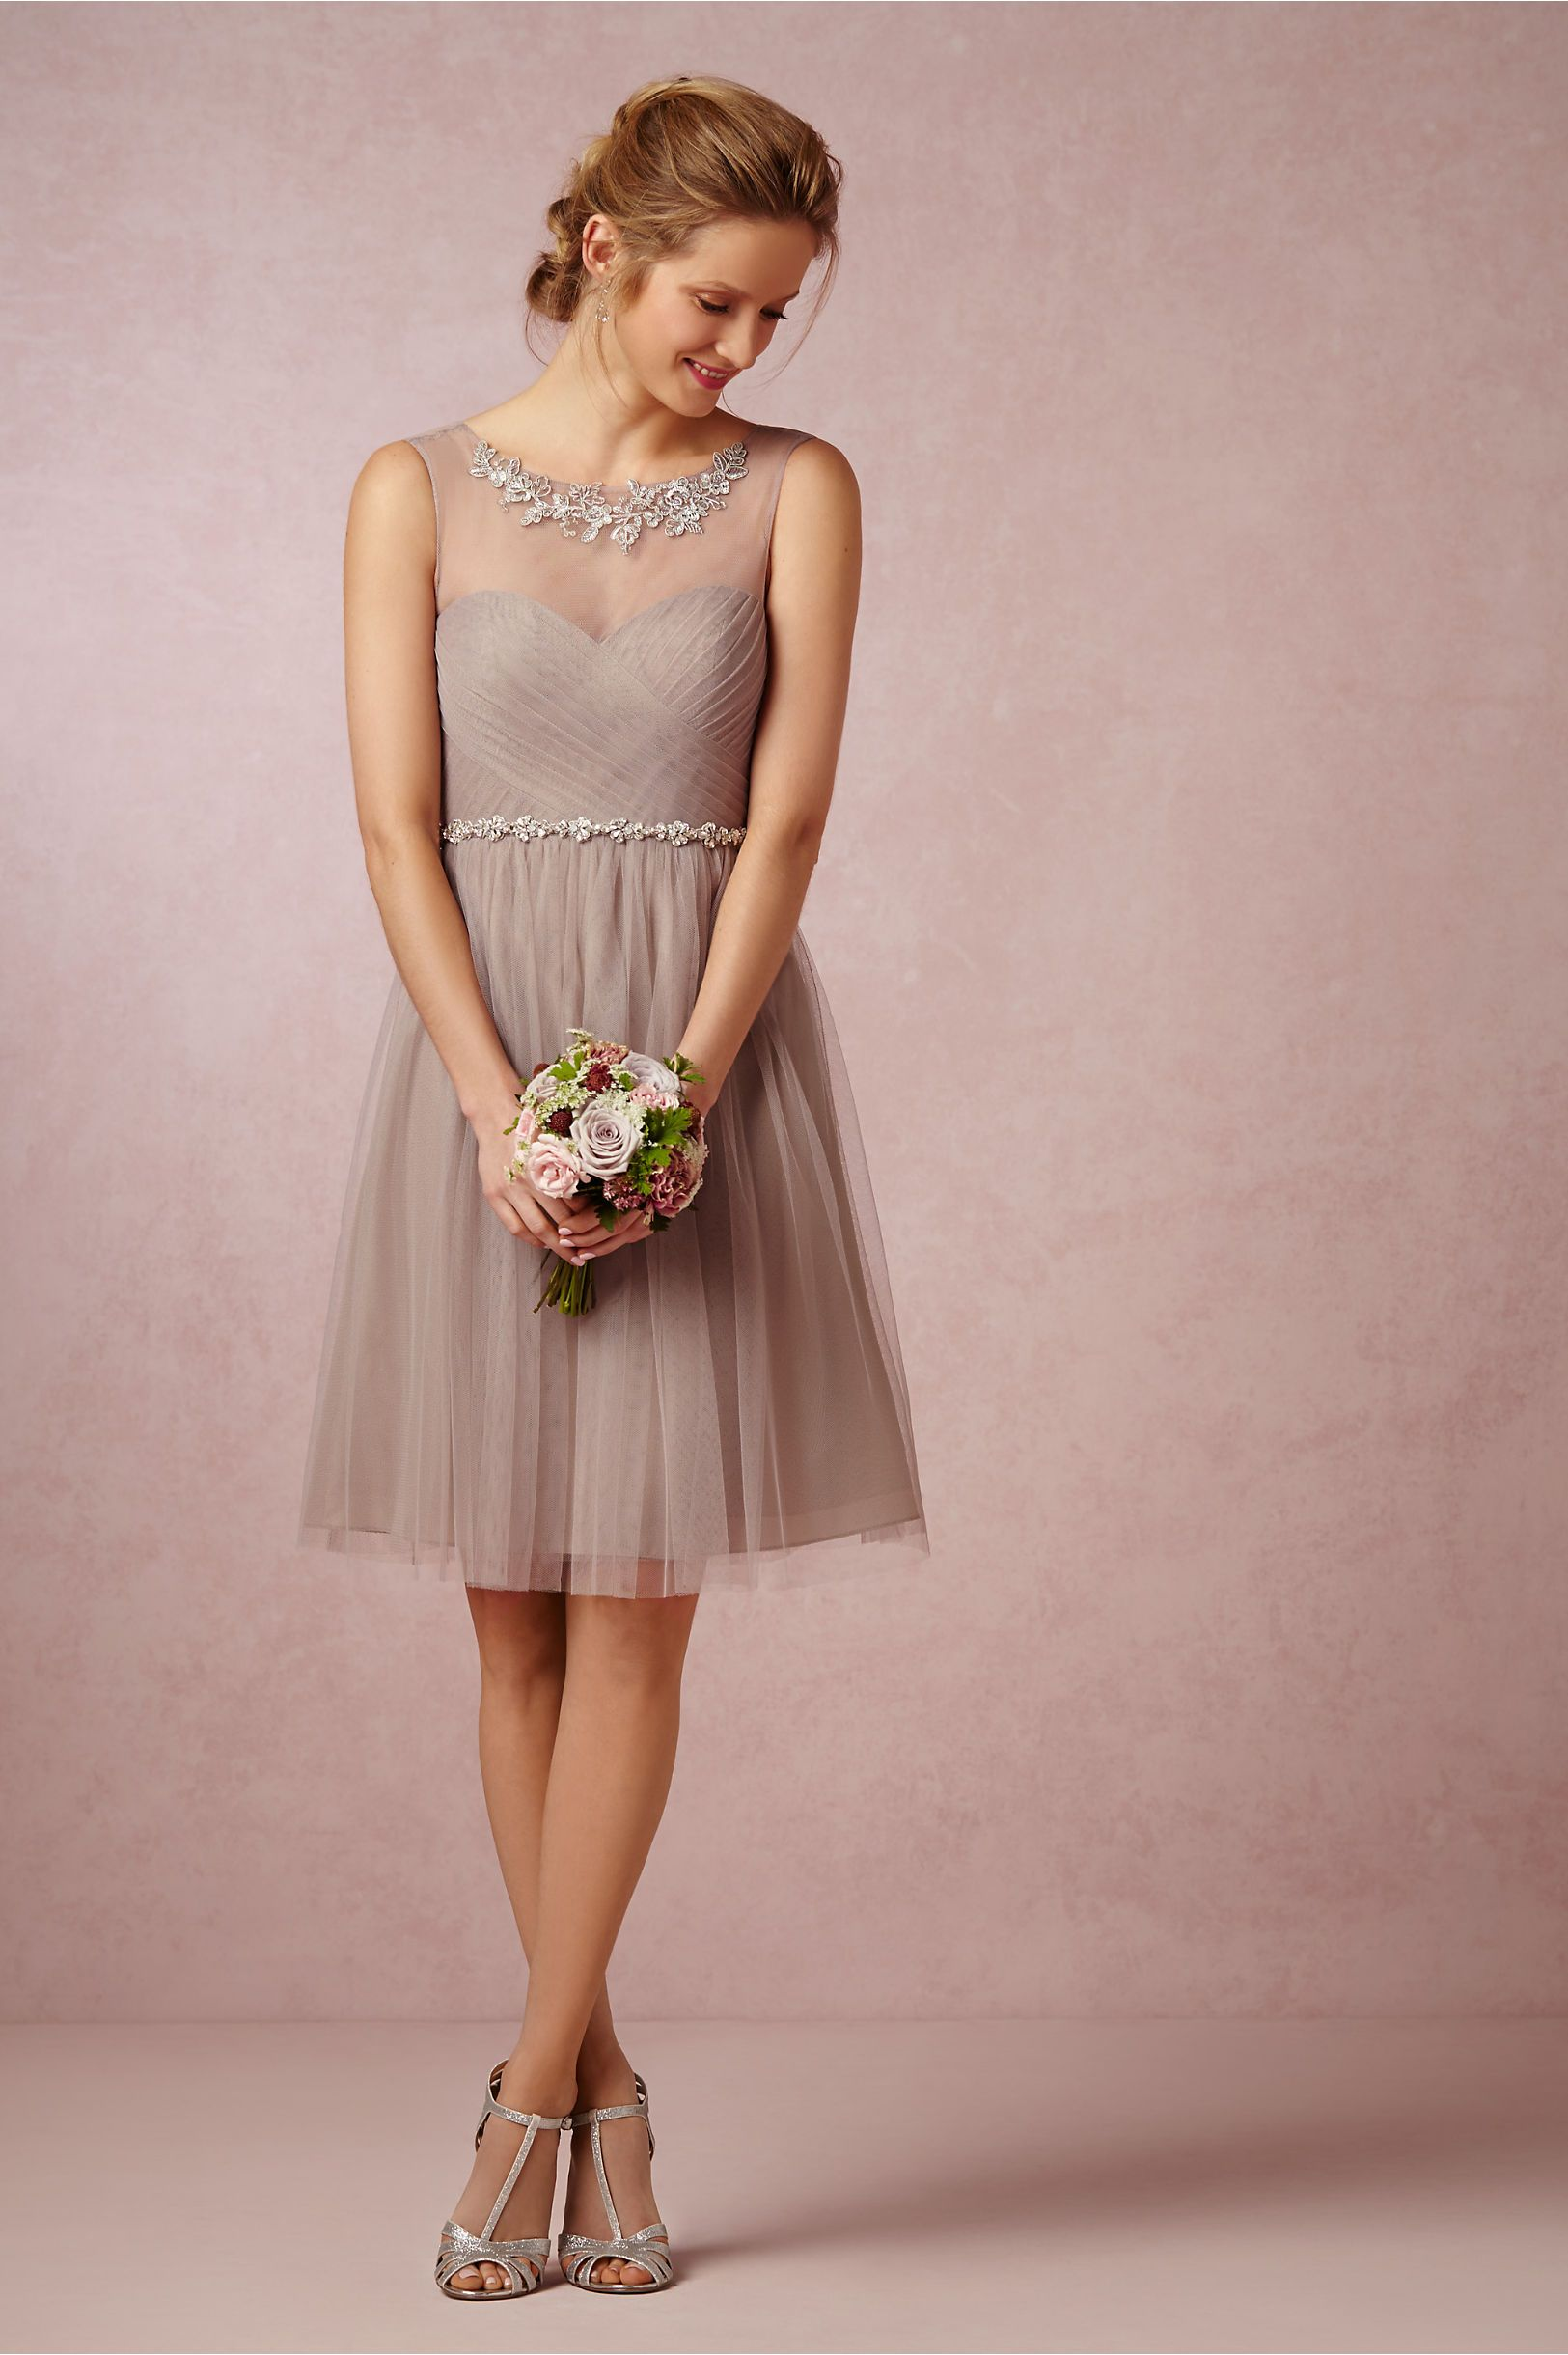 Chloe Dress in Bridal Party & Guests Bridesmaids at BHLDN | 10.10 ...